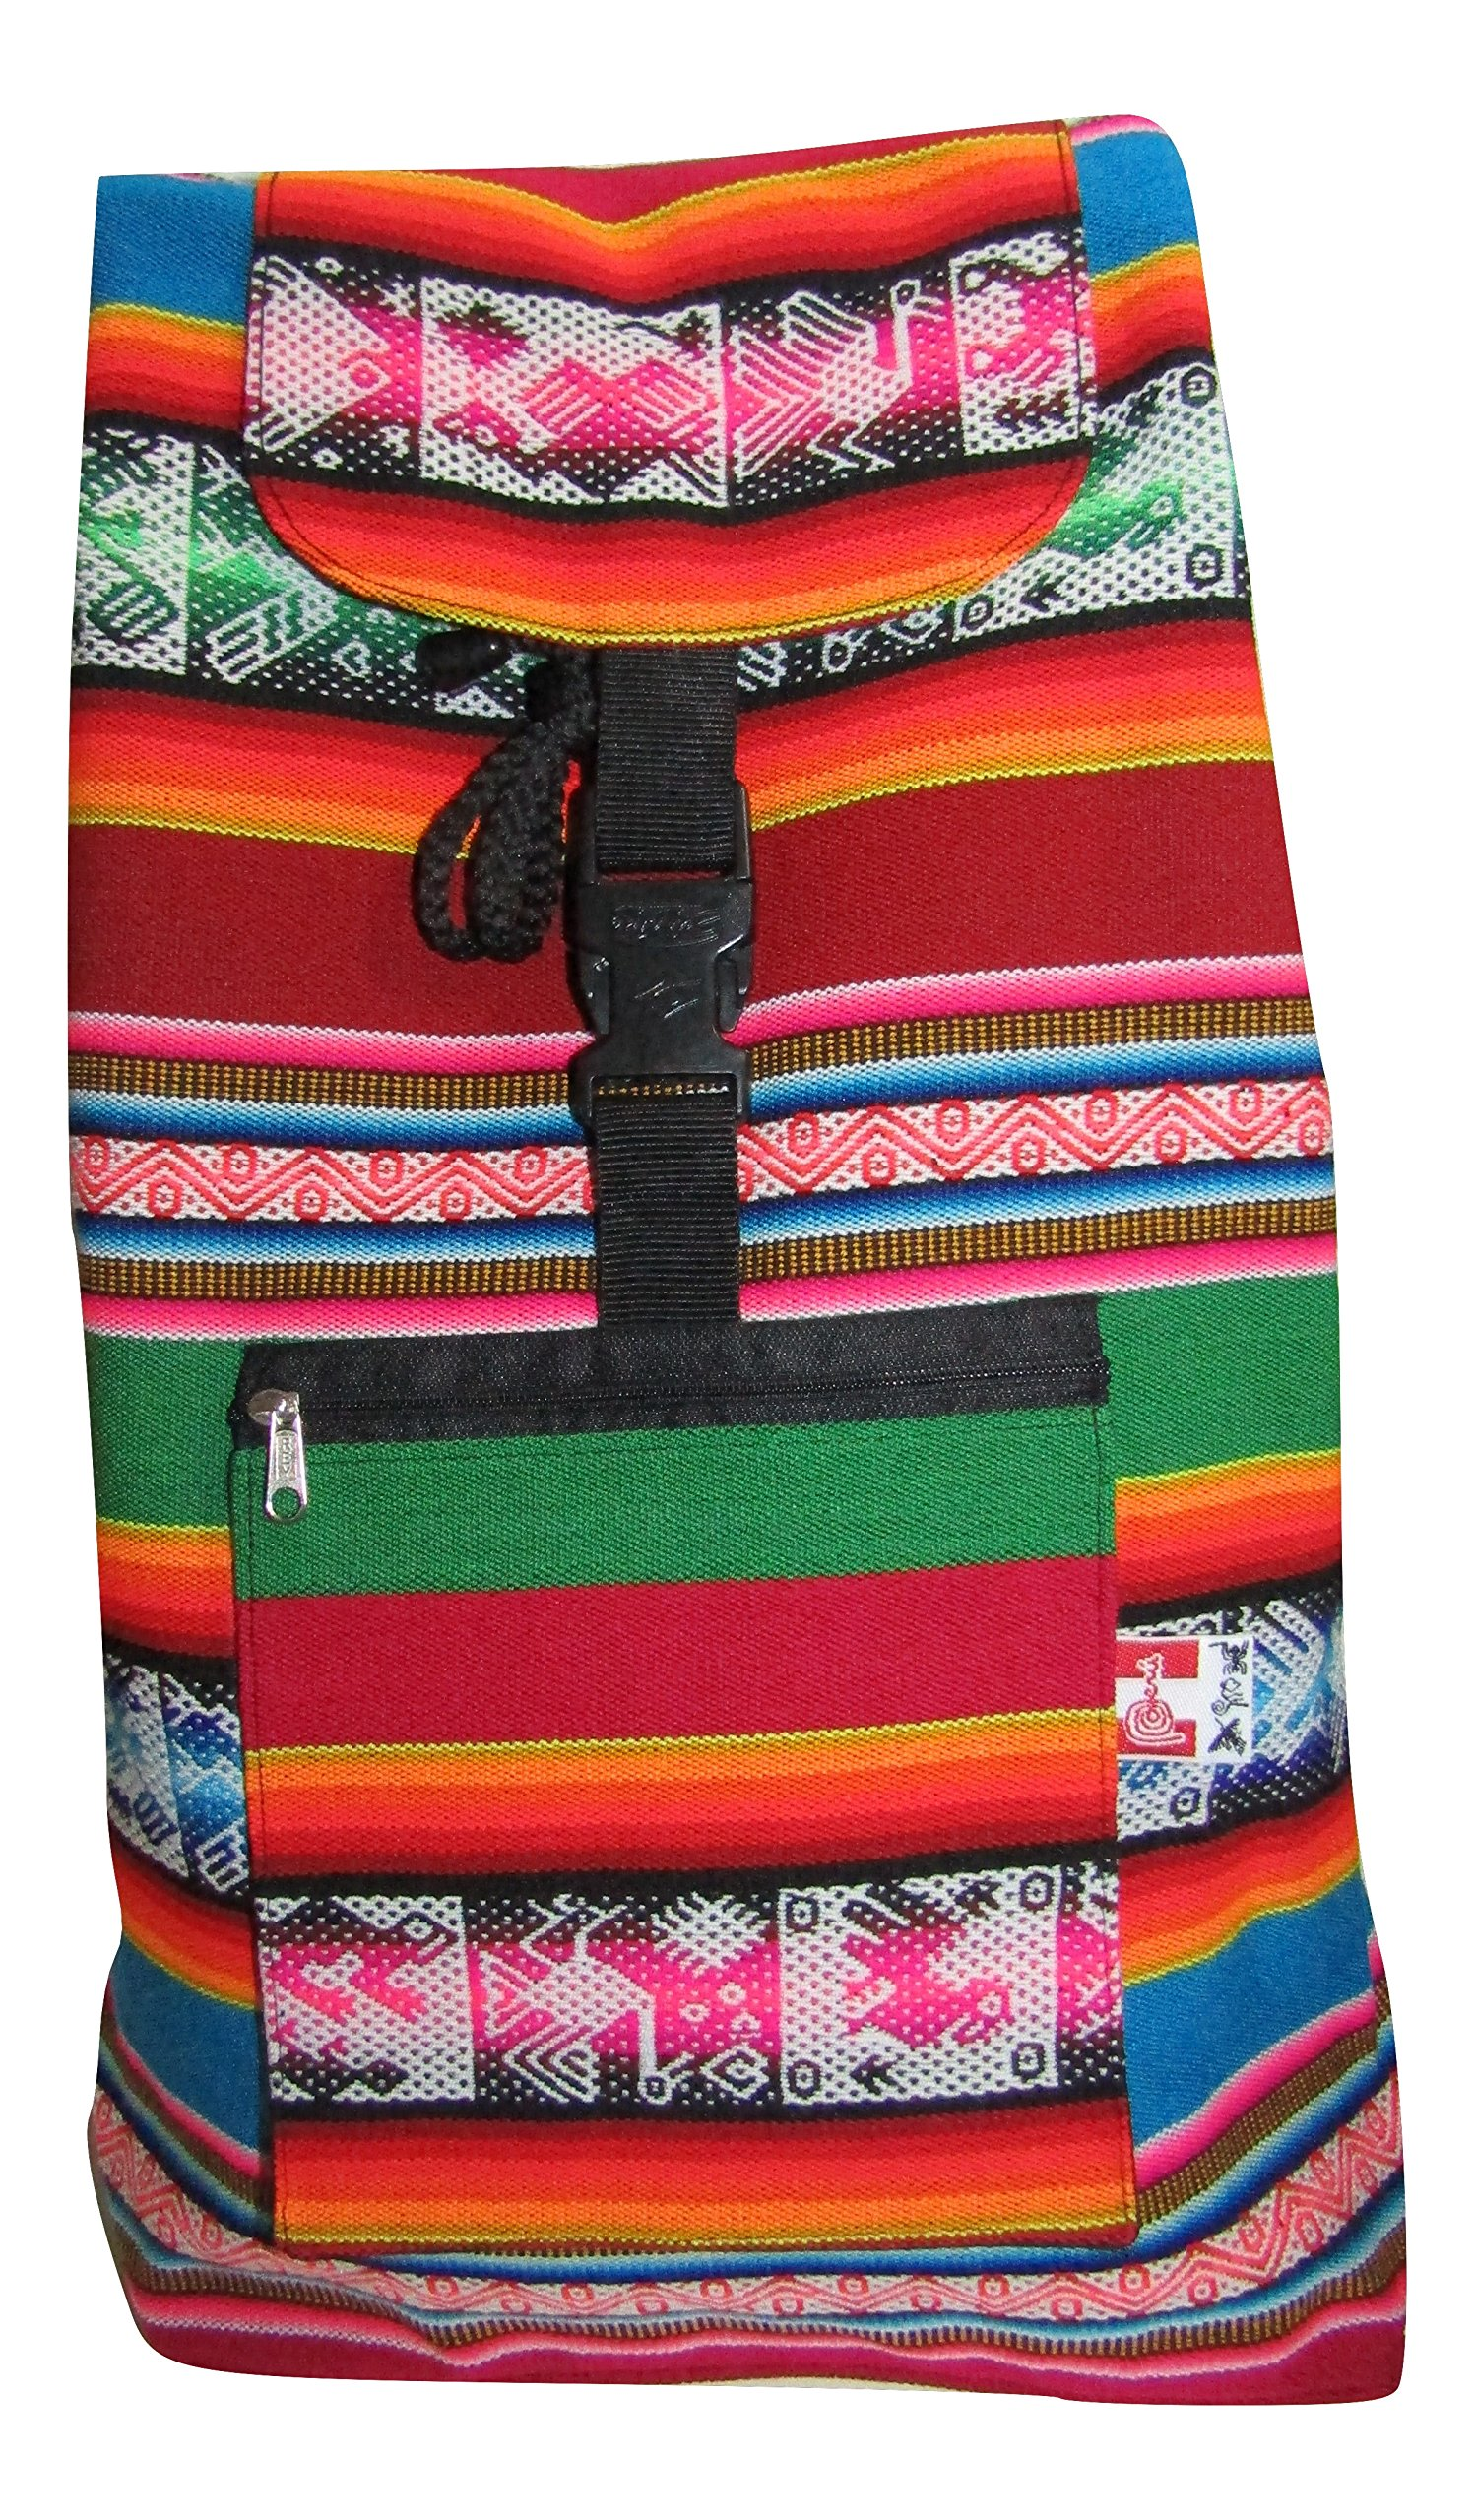 Peru Outdoor Picnic Colorful Wool Backpack Bag (Light Blue/Red)